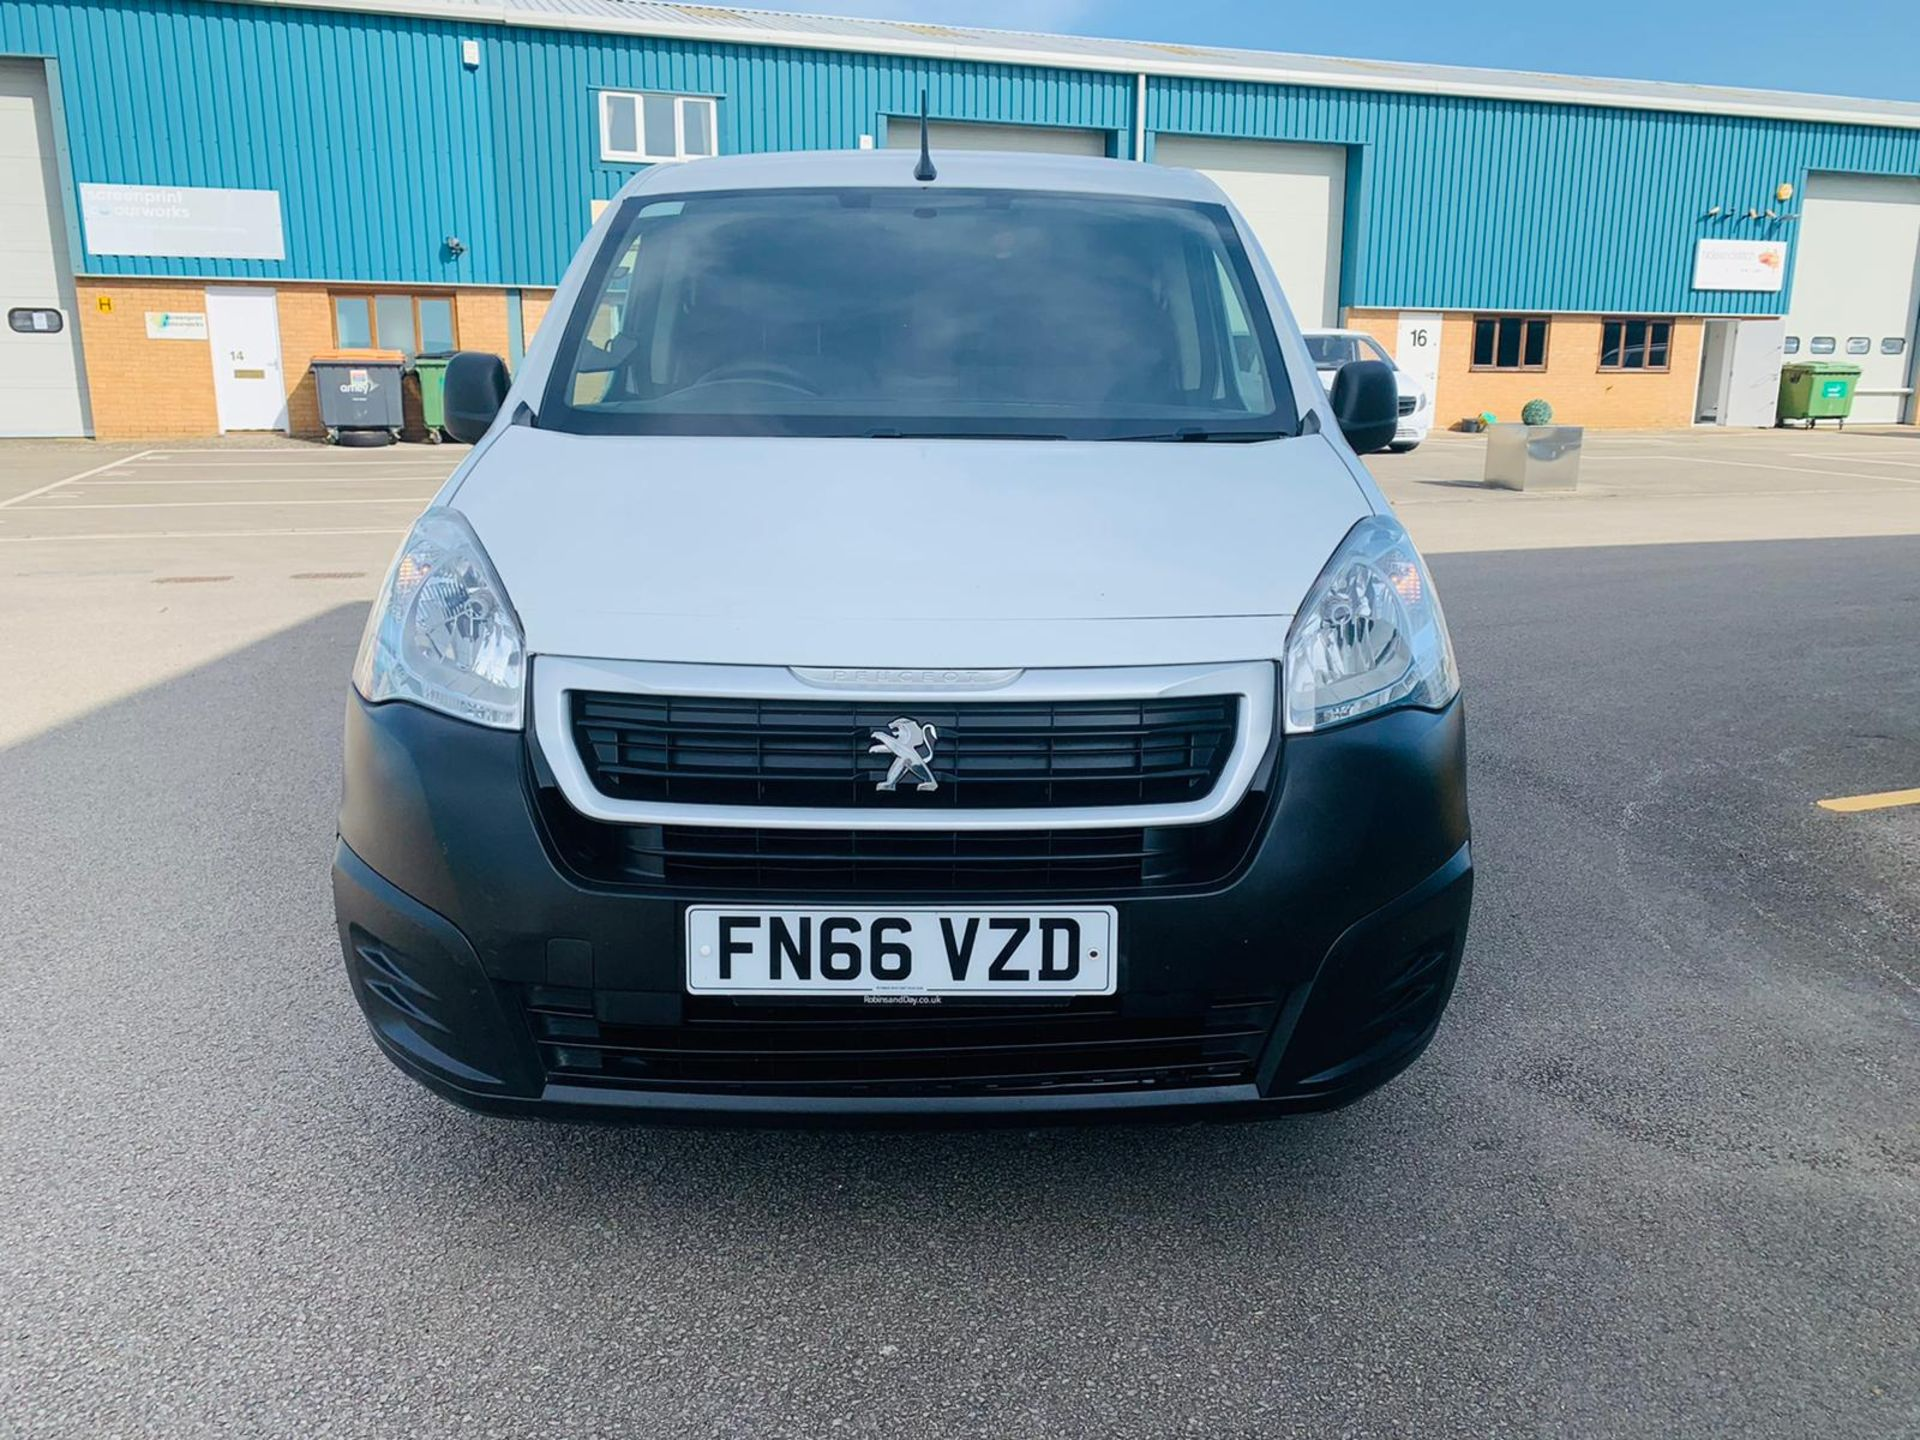 Peugeot Partner 1.6 HDI Professional 2017 Model - 1 Owner - Service Printout - Air Con - Image 5 of 23